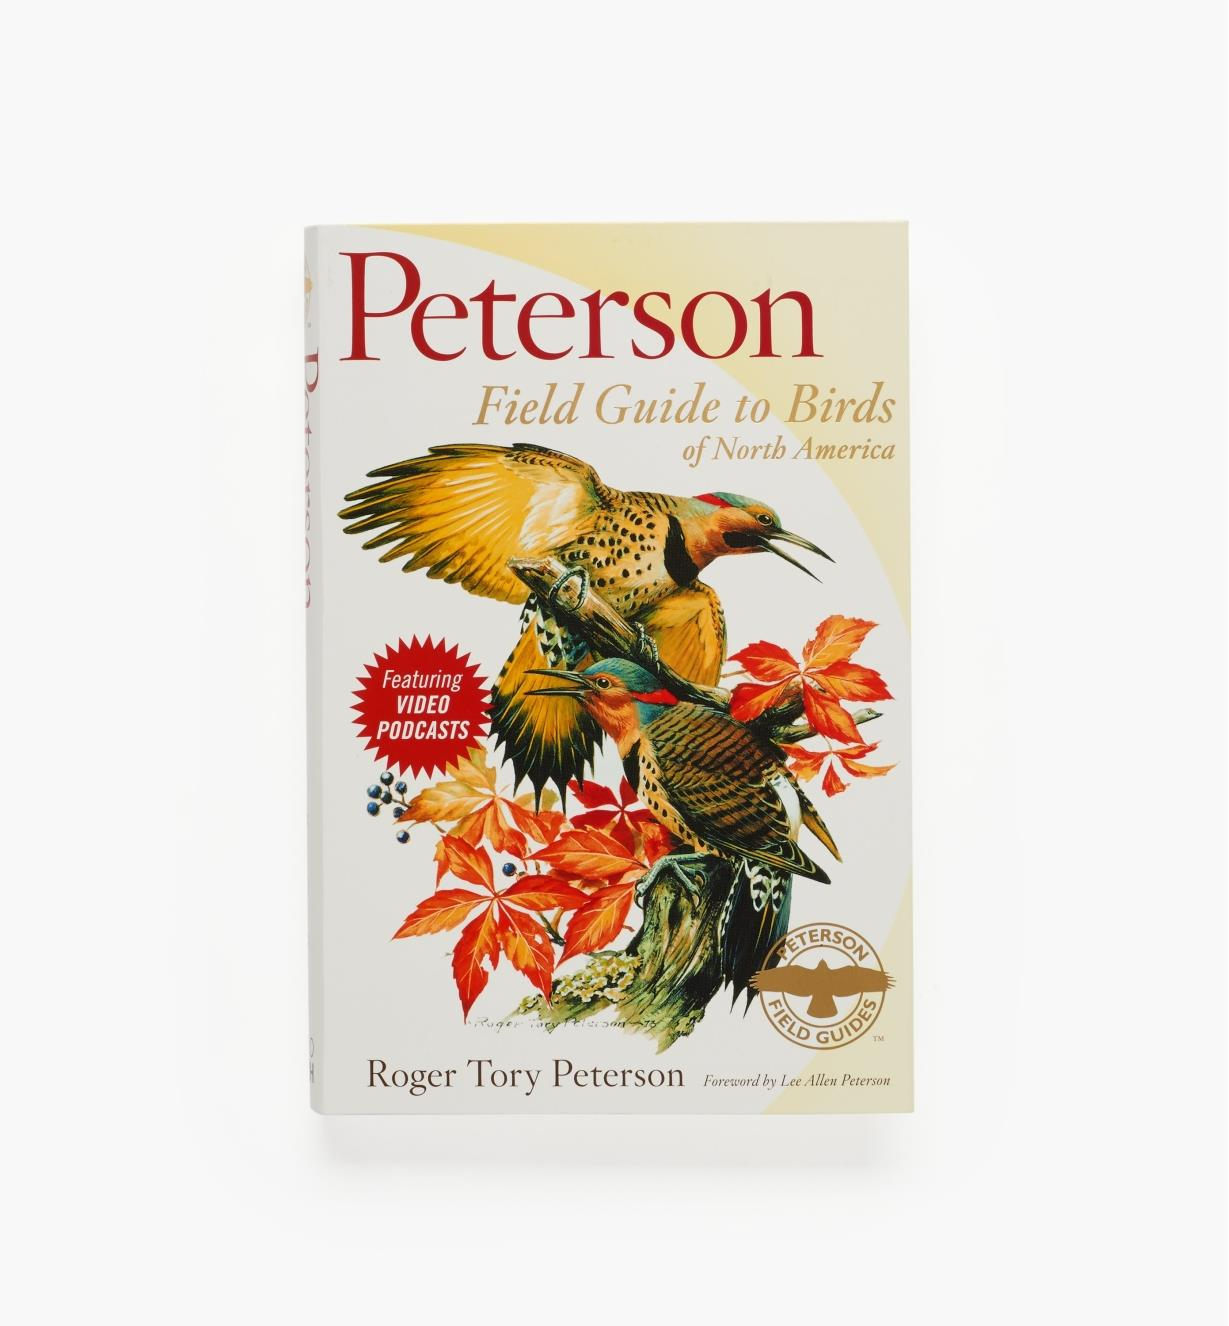 LA198 - Peterson Field Guide, Birds of North America, 2008